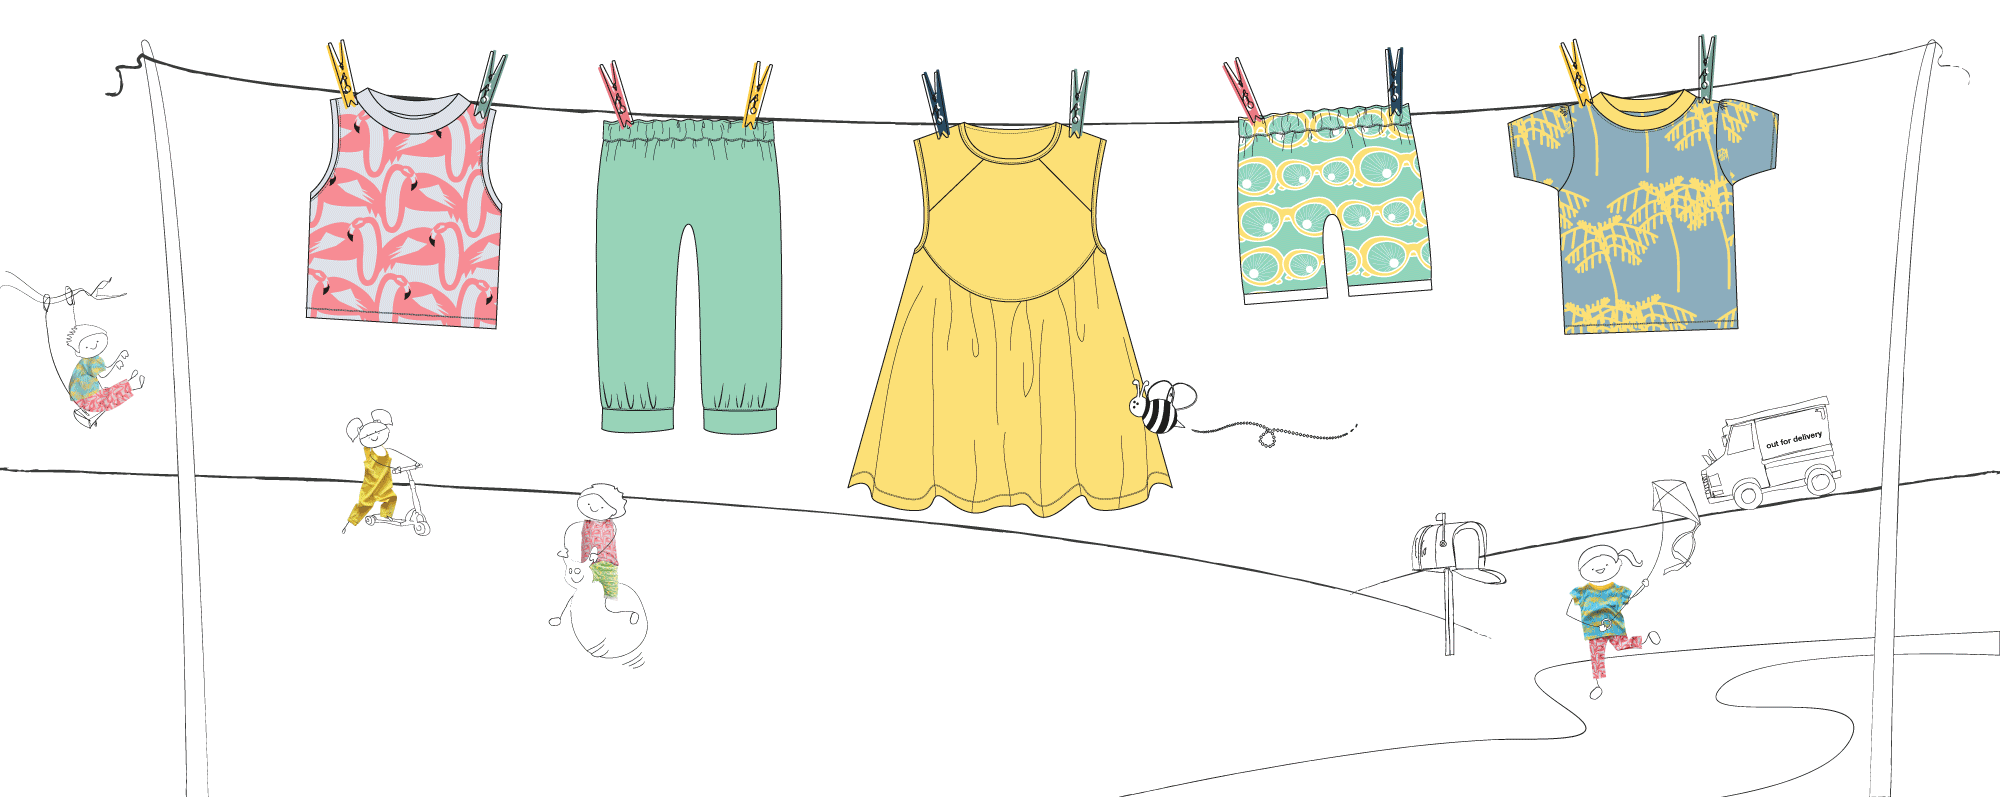 Children's clothing brand   Little Pegs   an illustration of a washing line with Little Pegs clothing. In the background children's playing wearing Little Pegs clothing